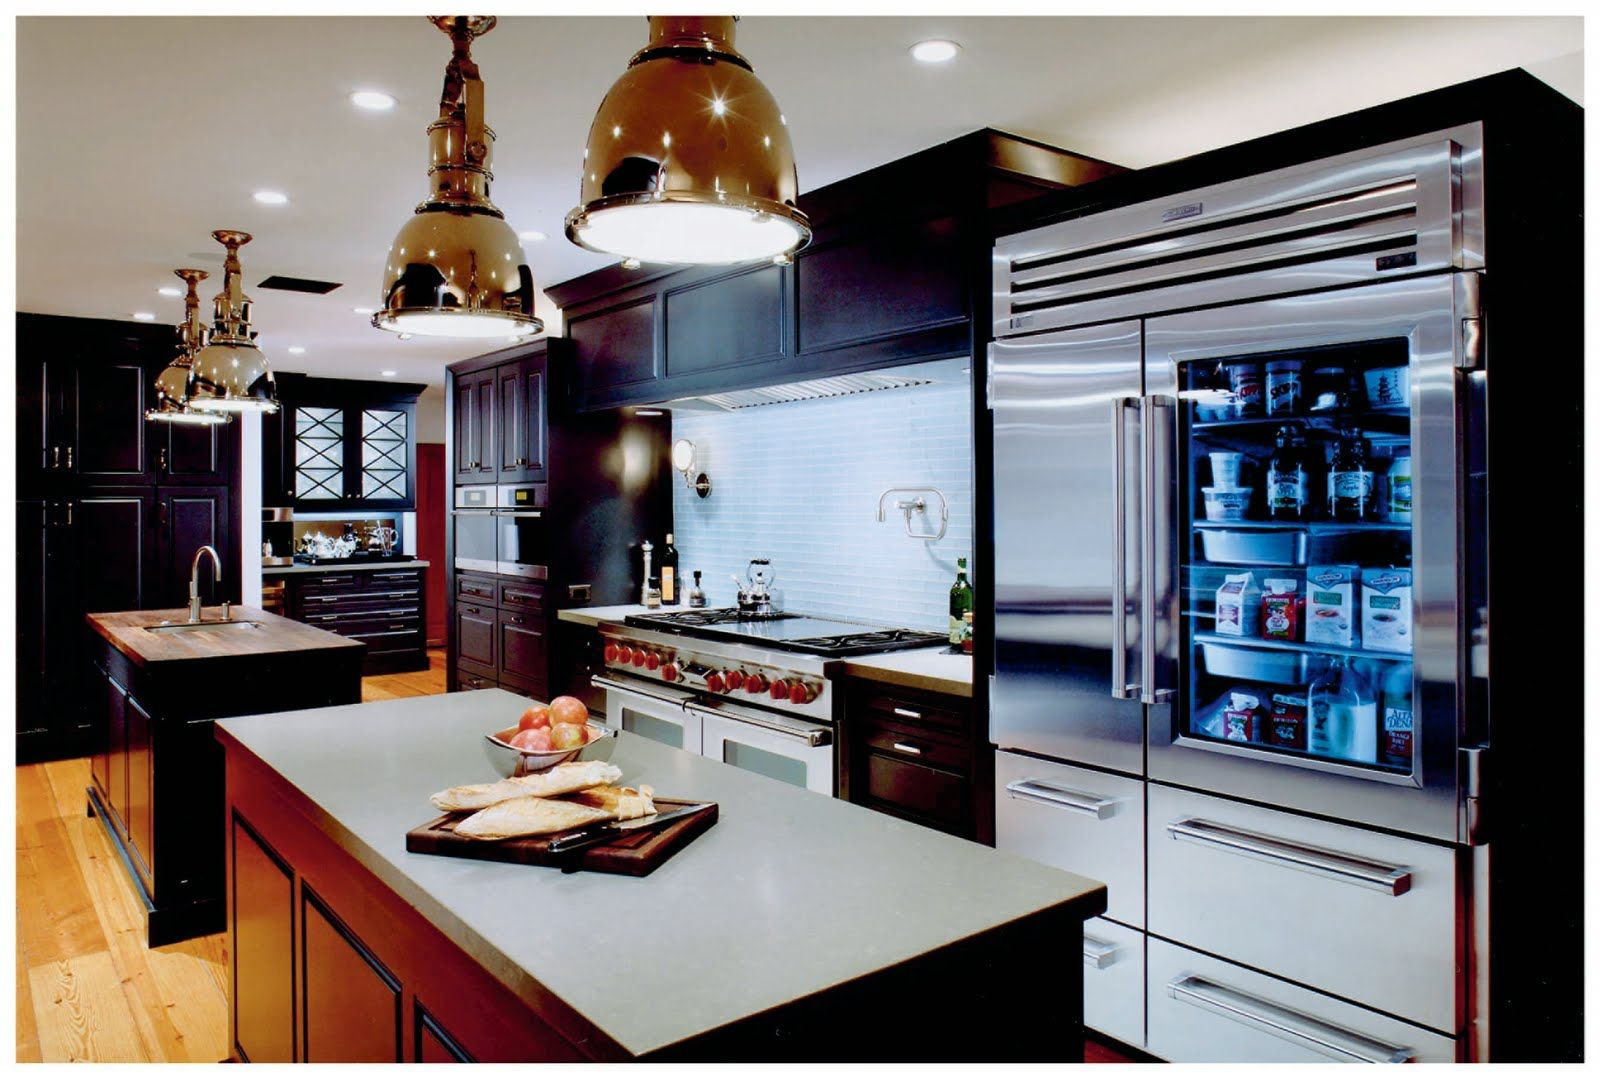 Kitchen Cabinet Showrooms On Long Island Sub Zero And Wolf Appliances Long Island Showroom Ovens